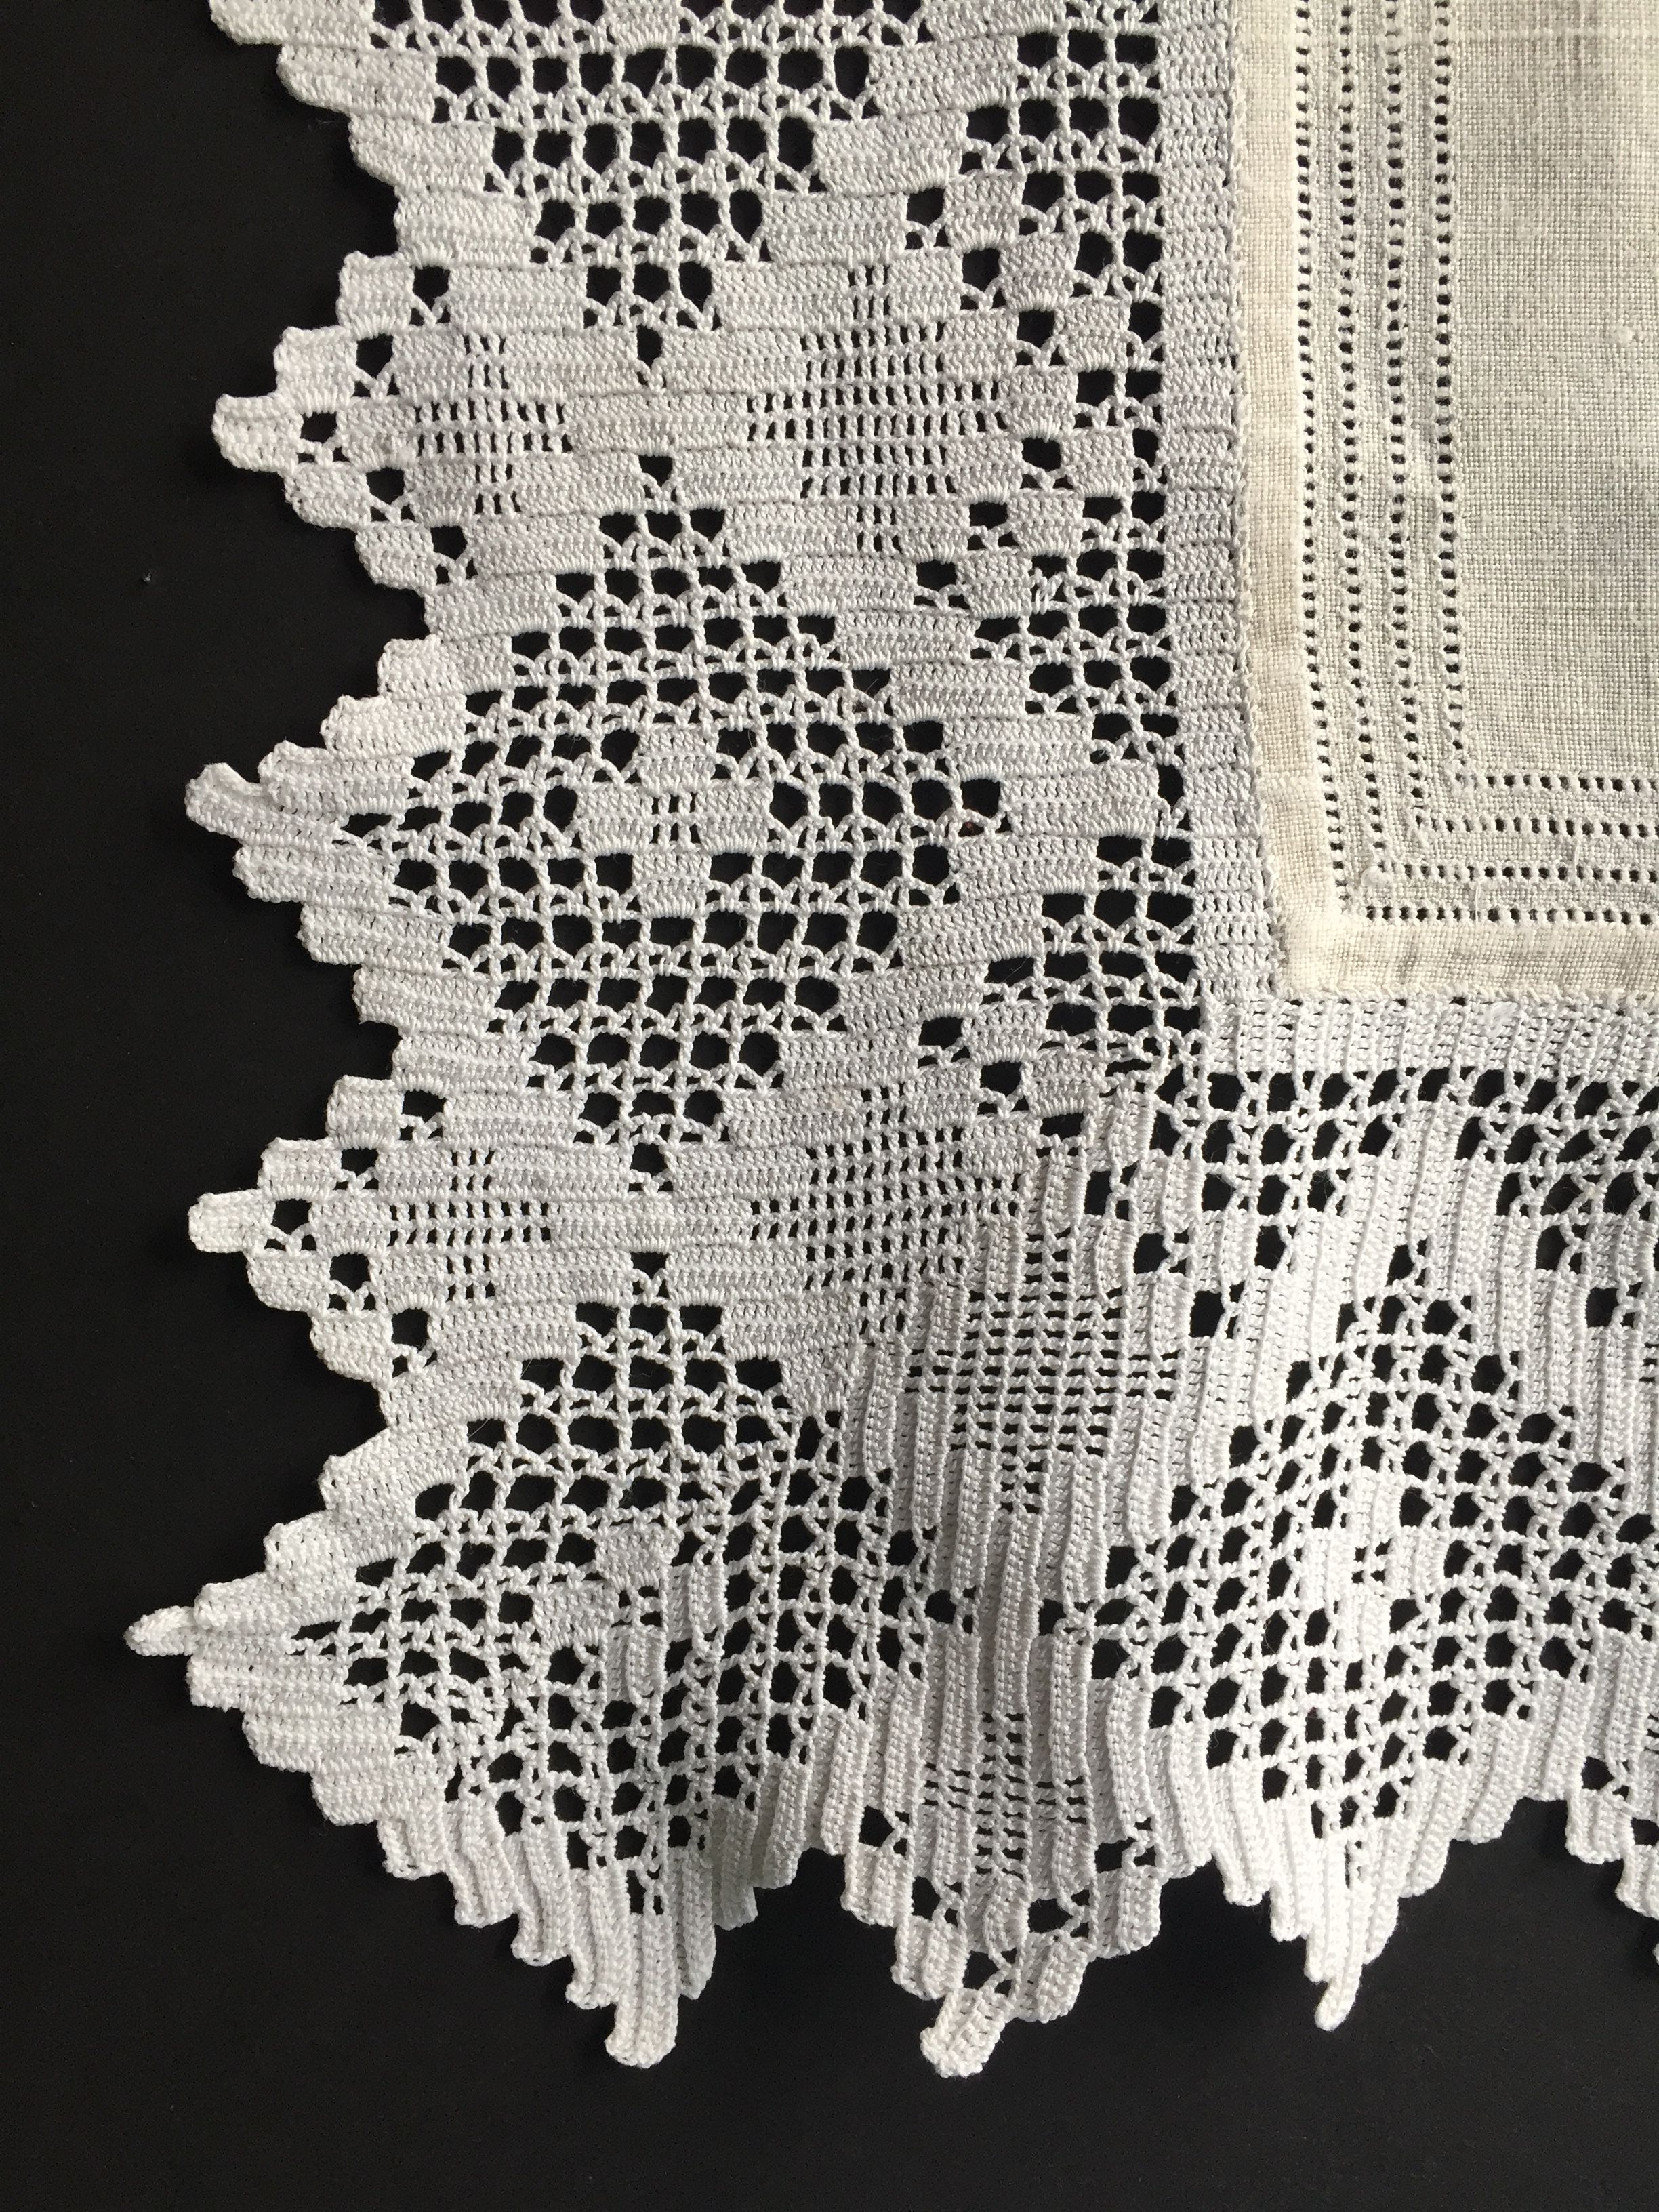 #beldentel2 Shabby chic,French country chic, Hand crochet edges linen toile.